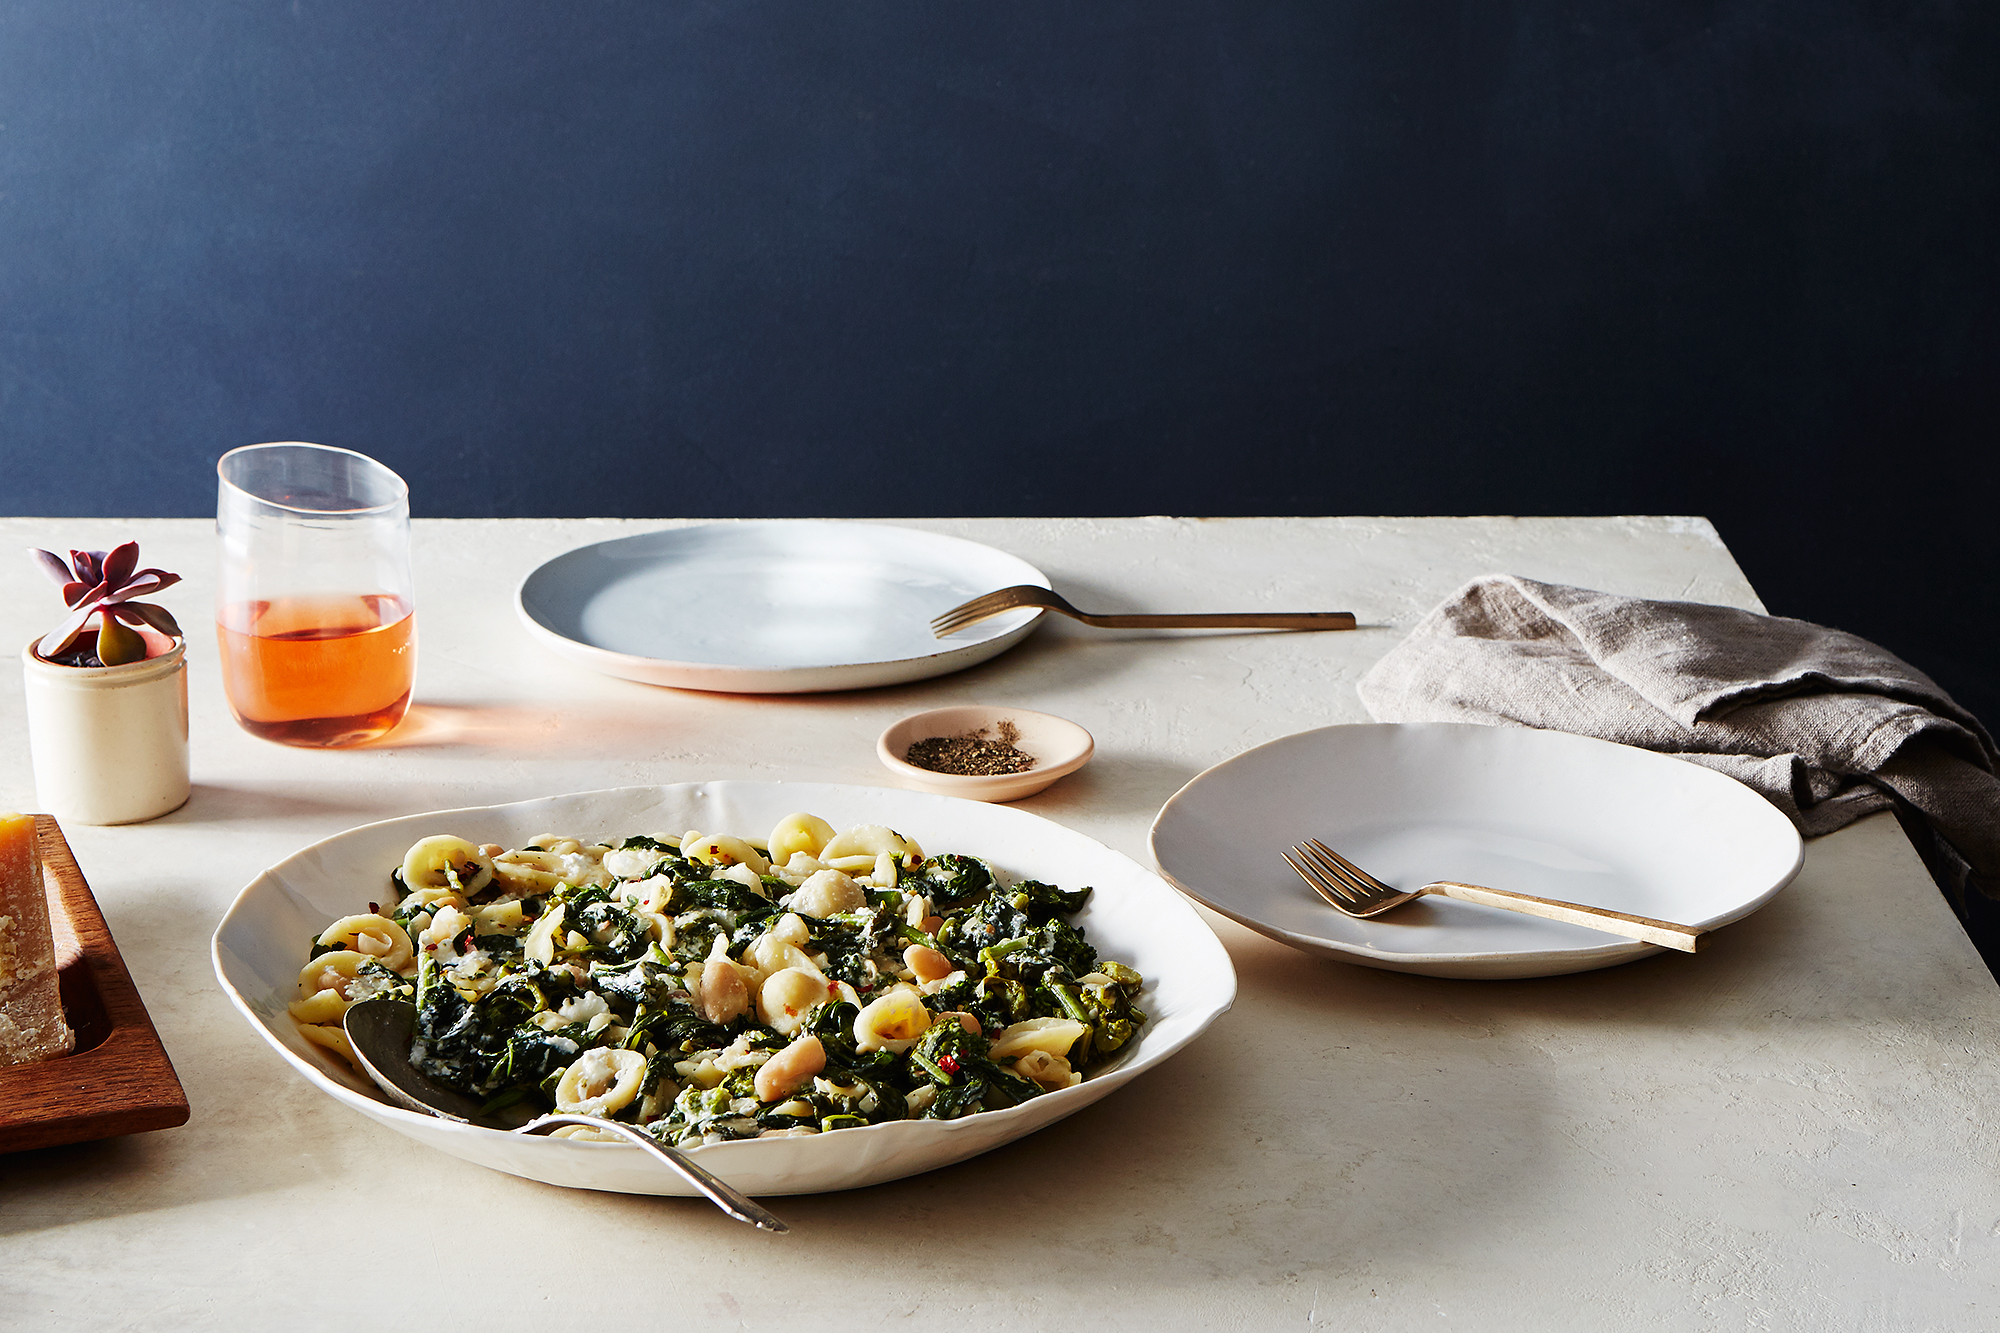 2015-1124_pasta-with-broccoli-rabe-and-white-bean-anchovy-sauce_bobbi-lin_14655.jpg